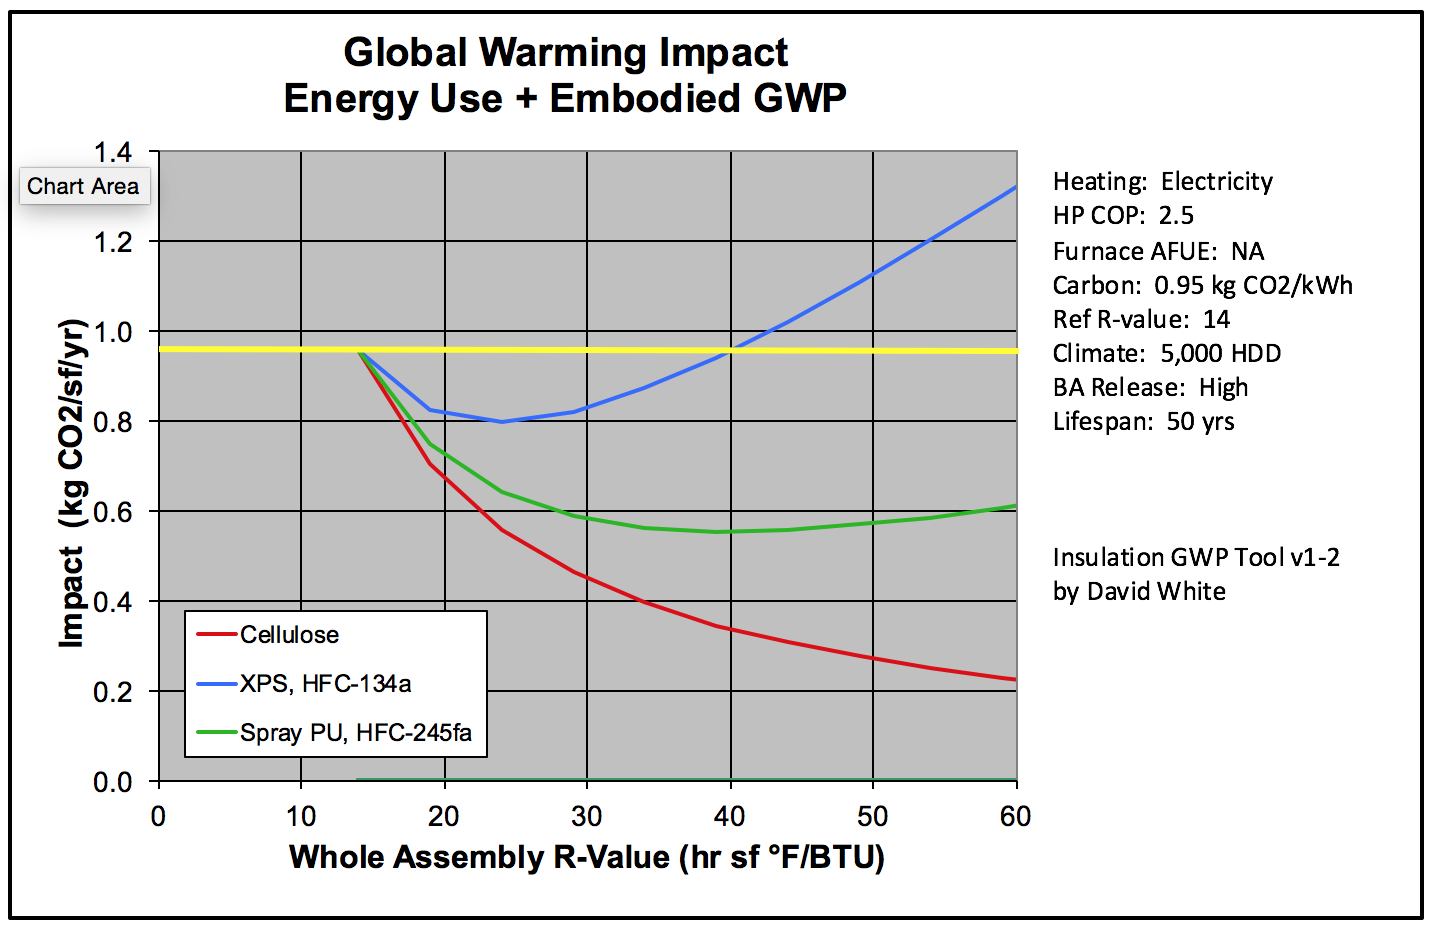 Global warming impact from David White's calculator, electric heat pump with dirty electricity